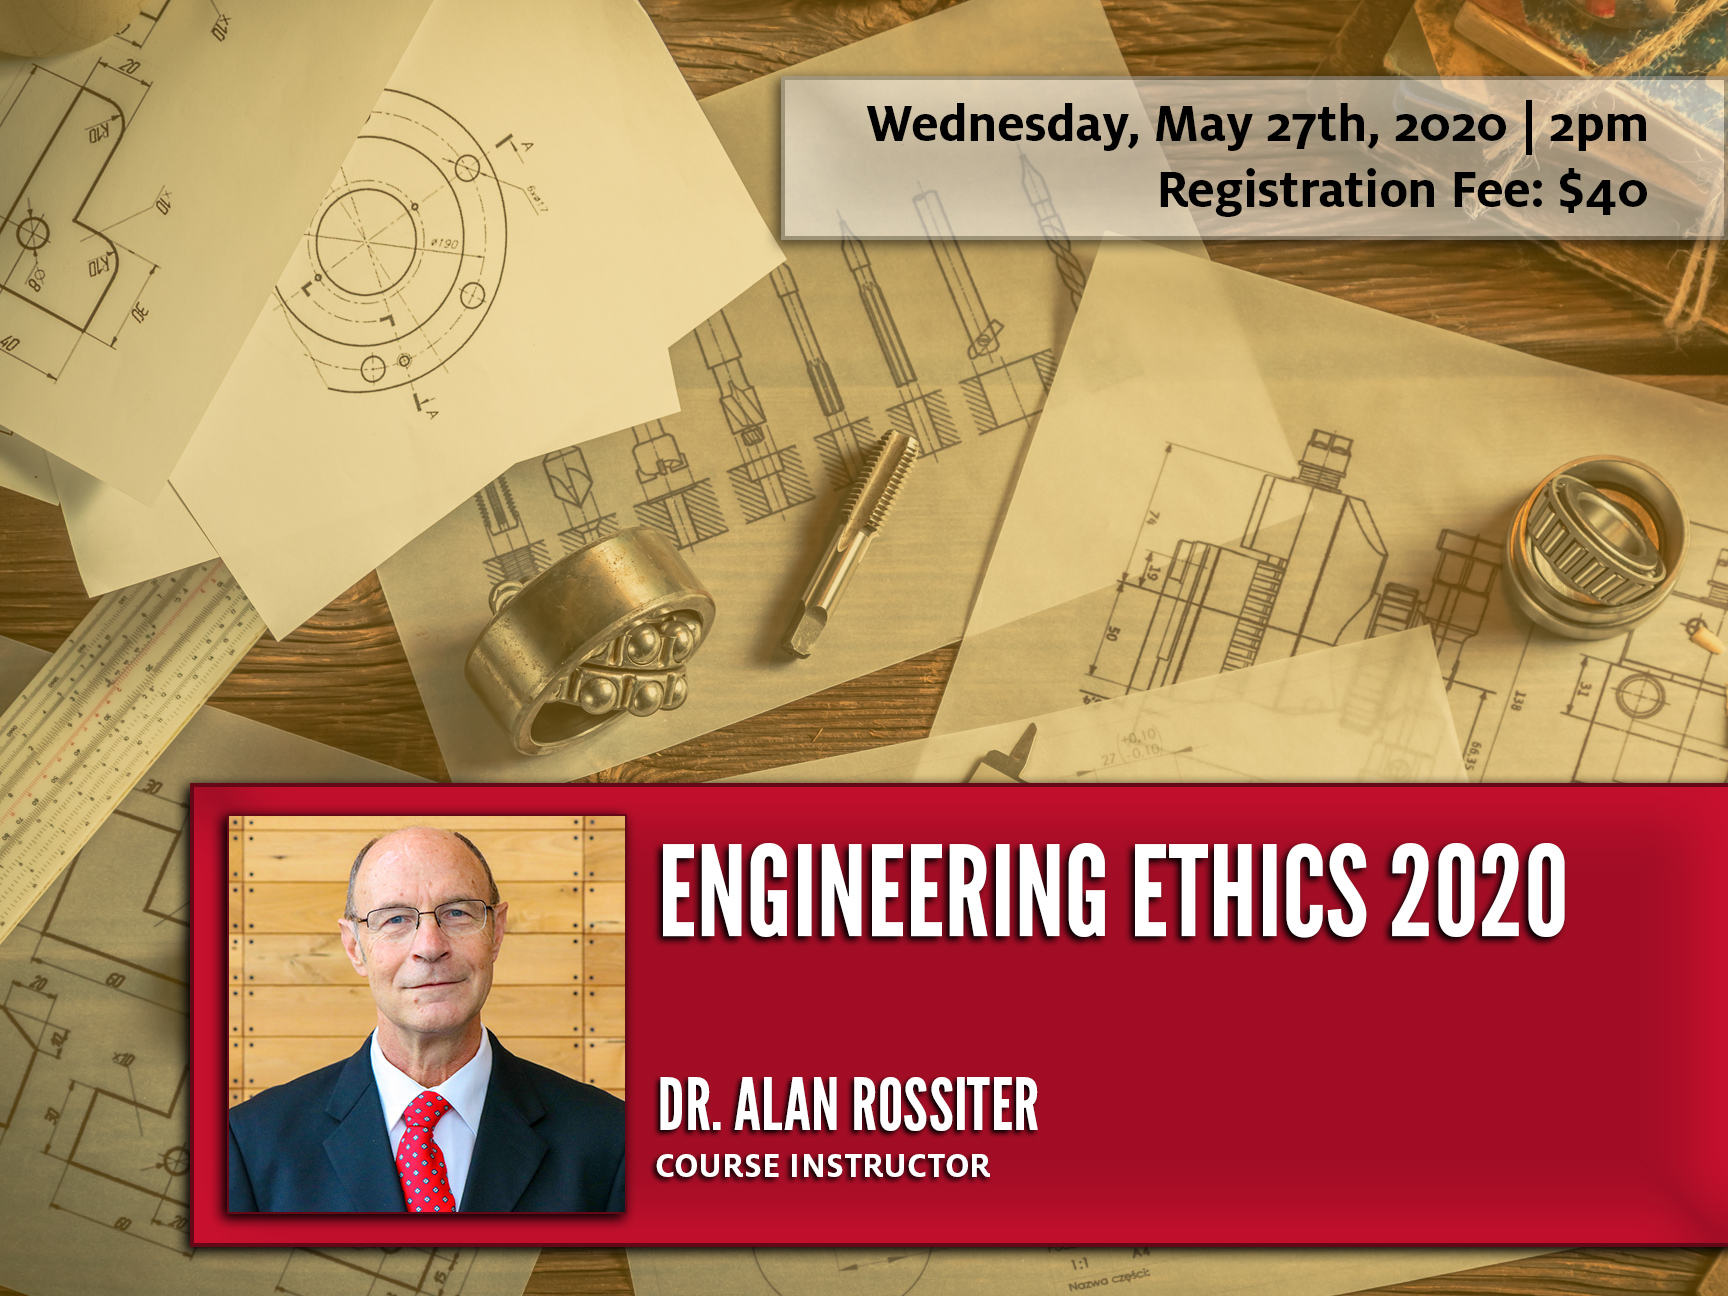 Engineering Ethics 2020 Online Course Image